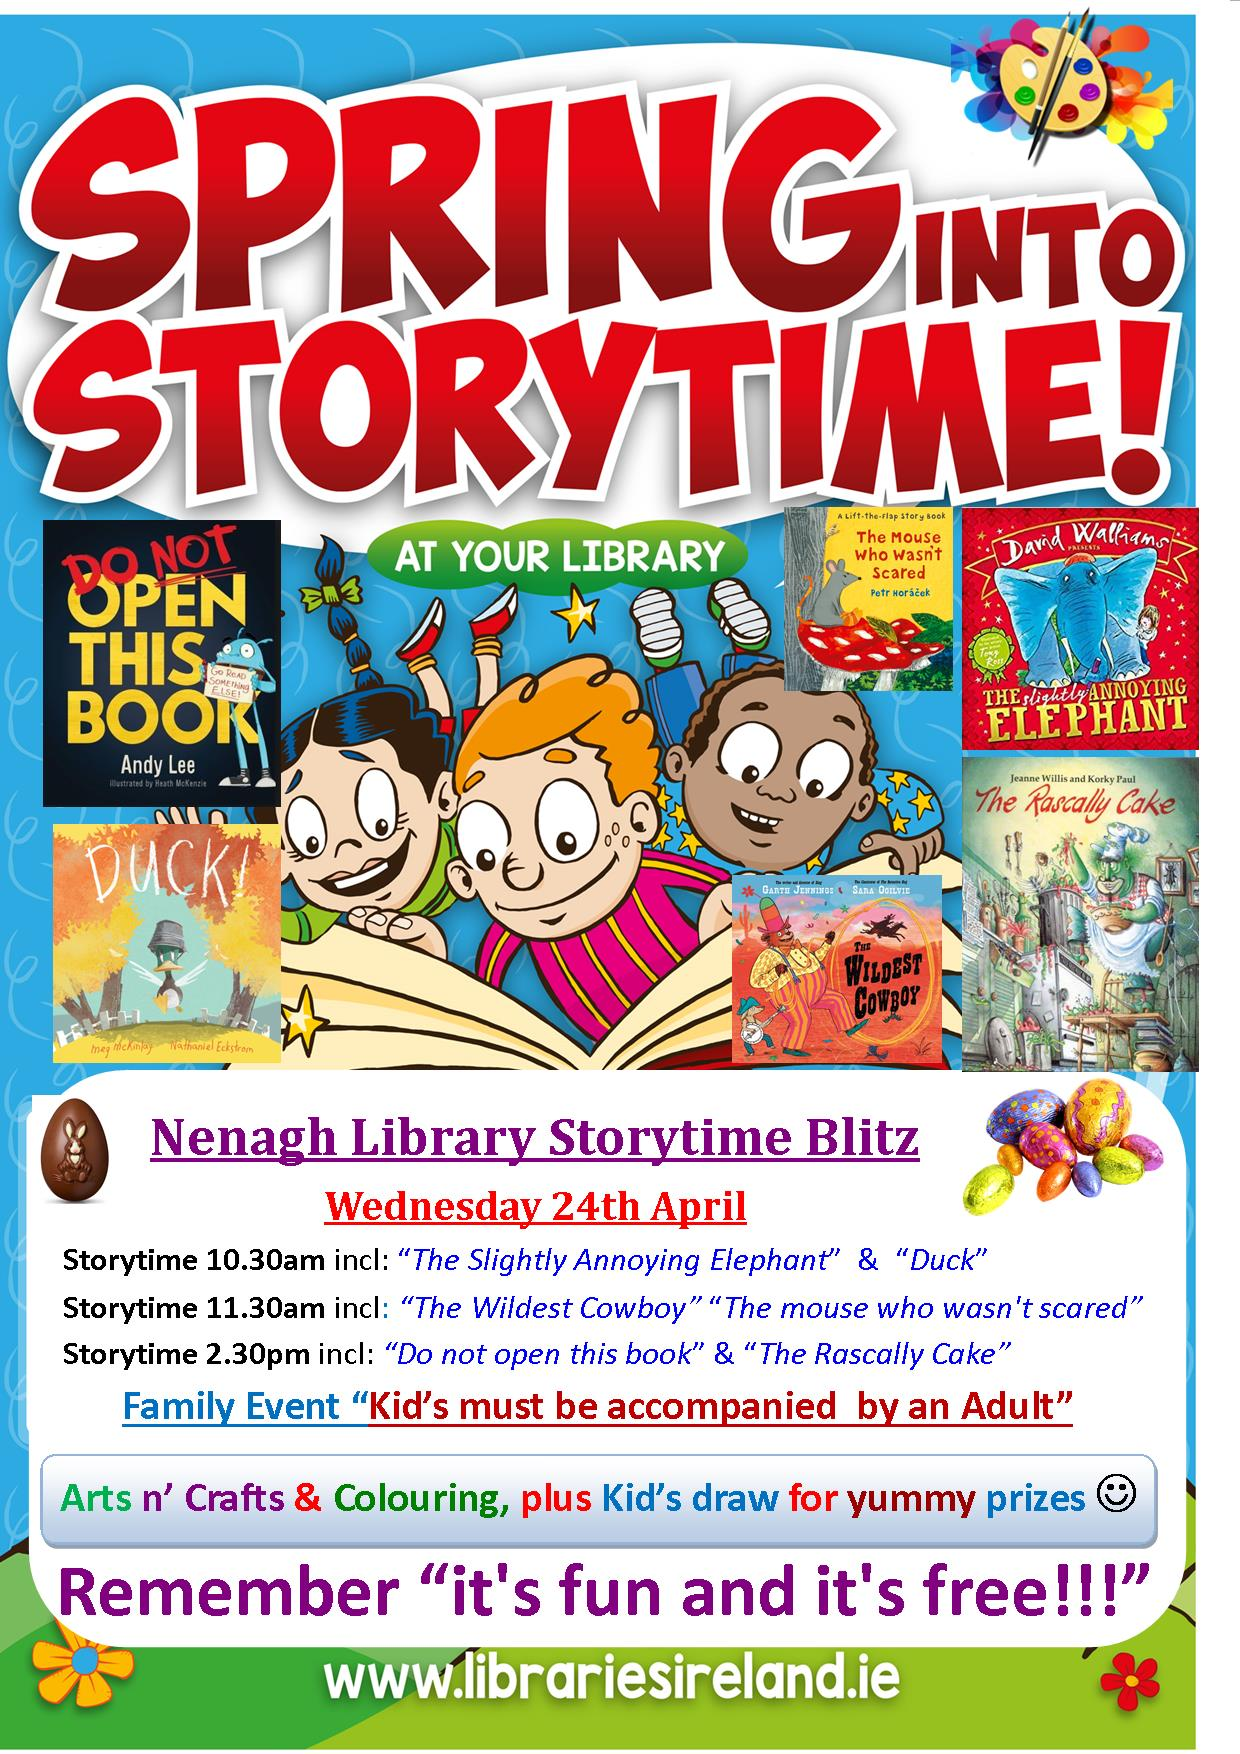 Spring Into Storytime At Nenagh Library